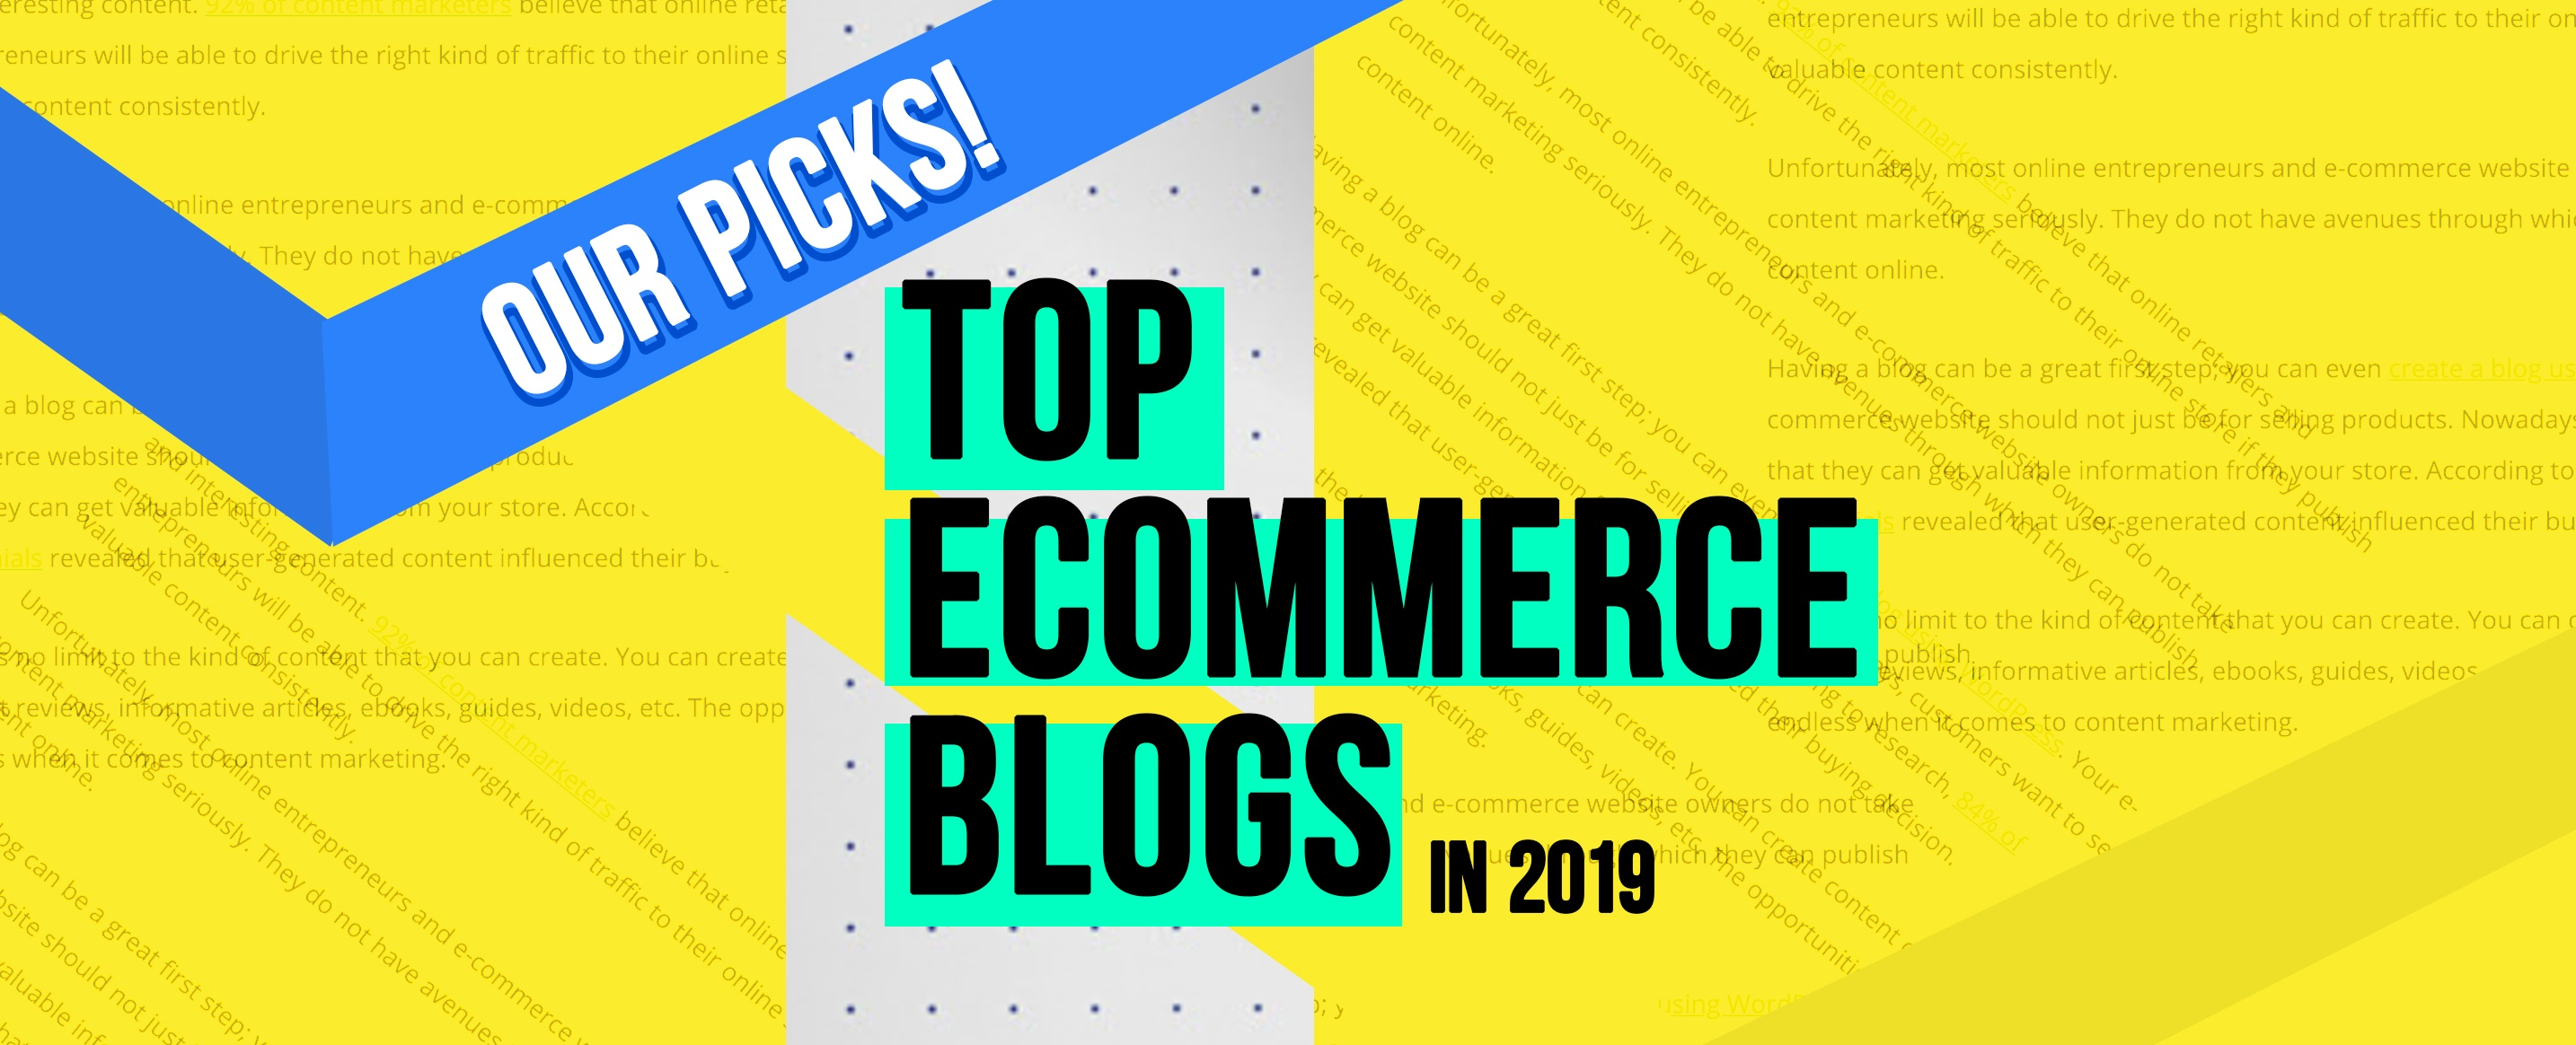 Top-ECommerce-Blogs-of-2019--Our-Picks